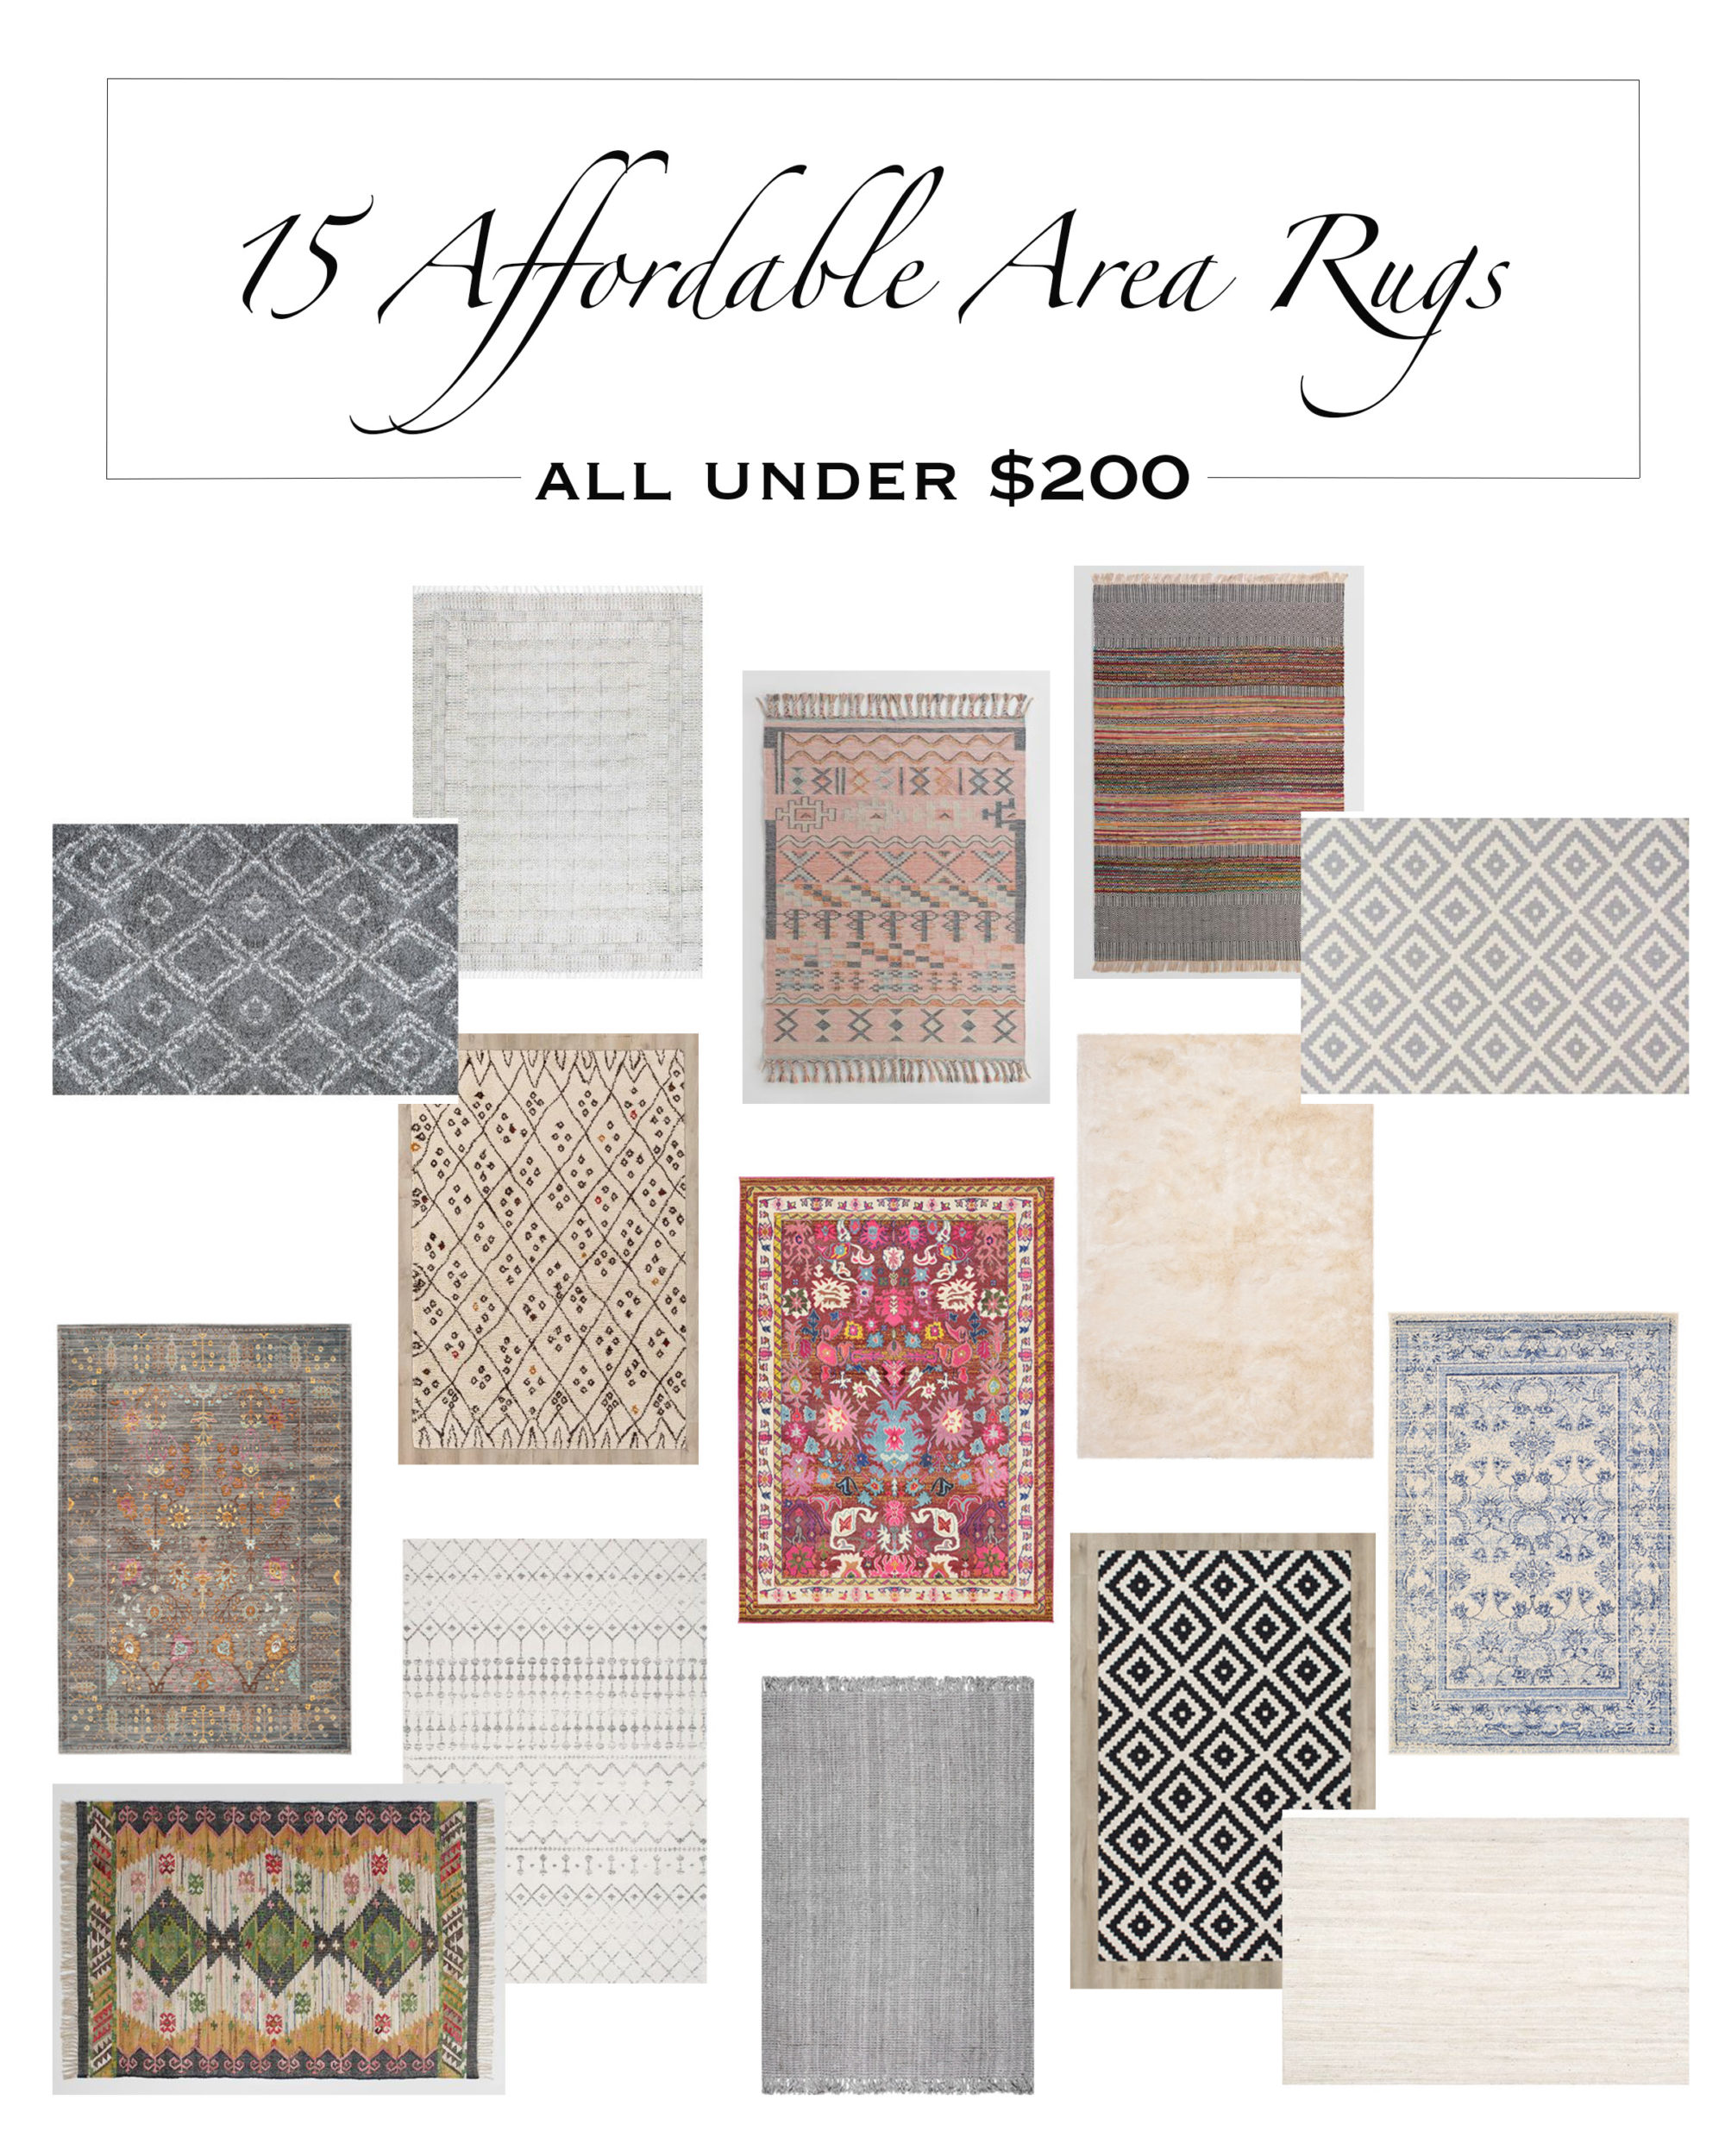 My Top 15 Affordable Area Rugs Under $200!